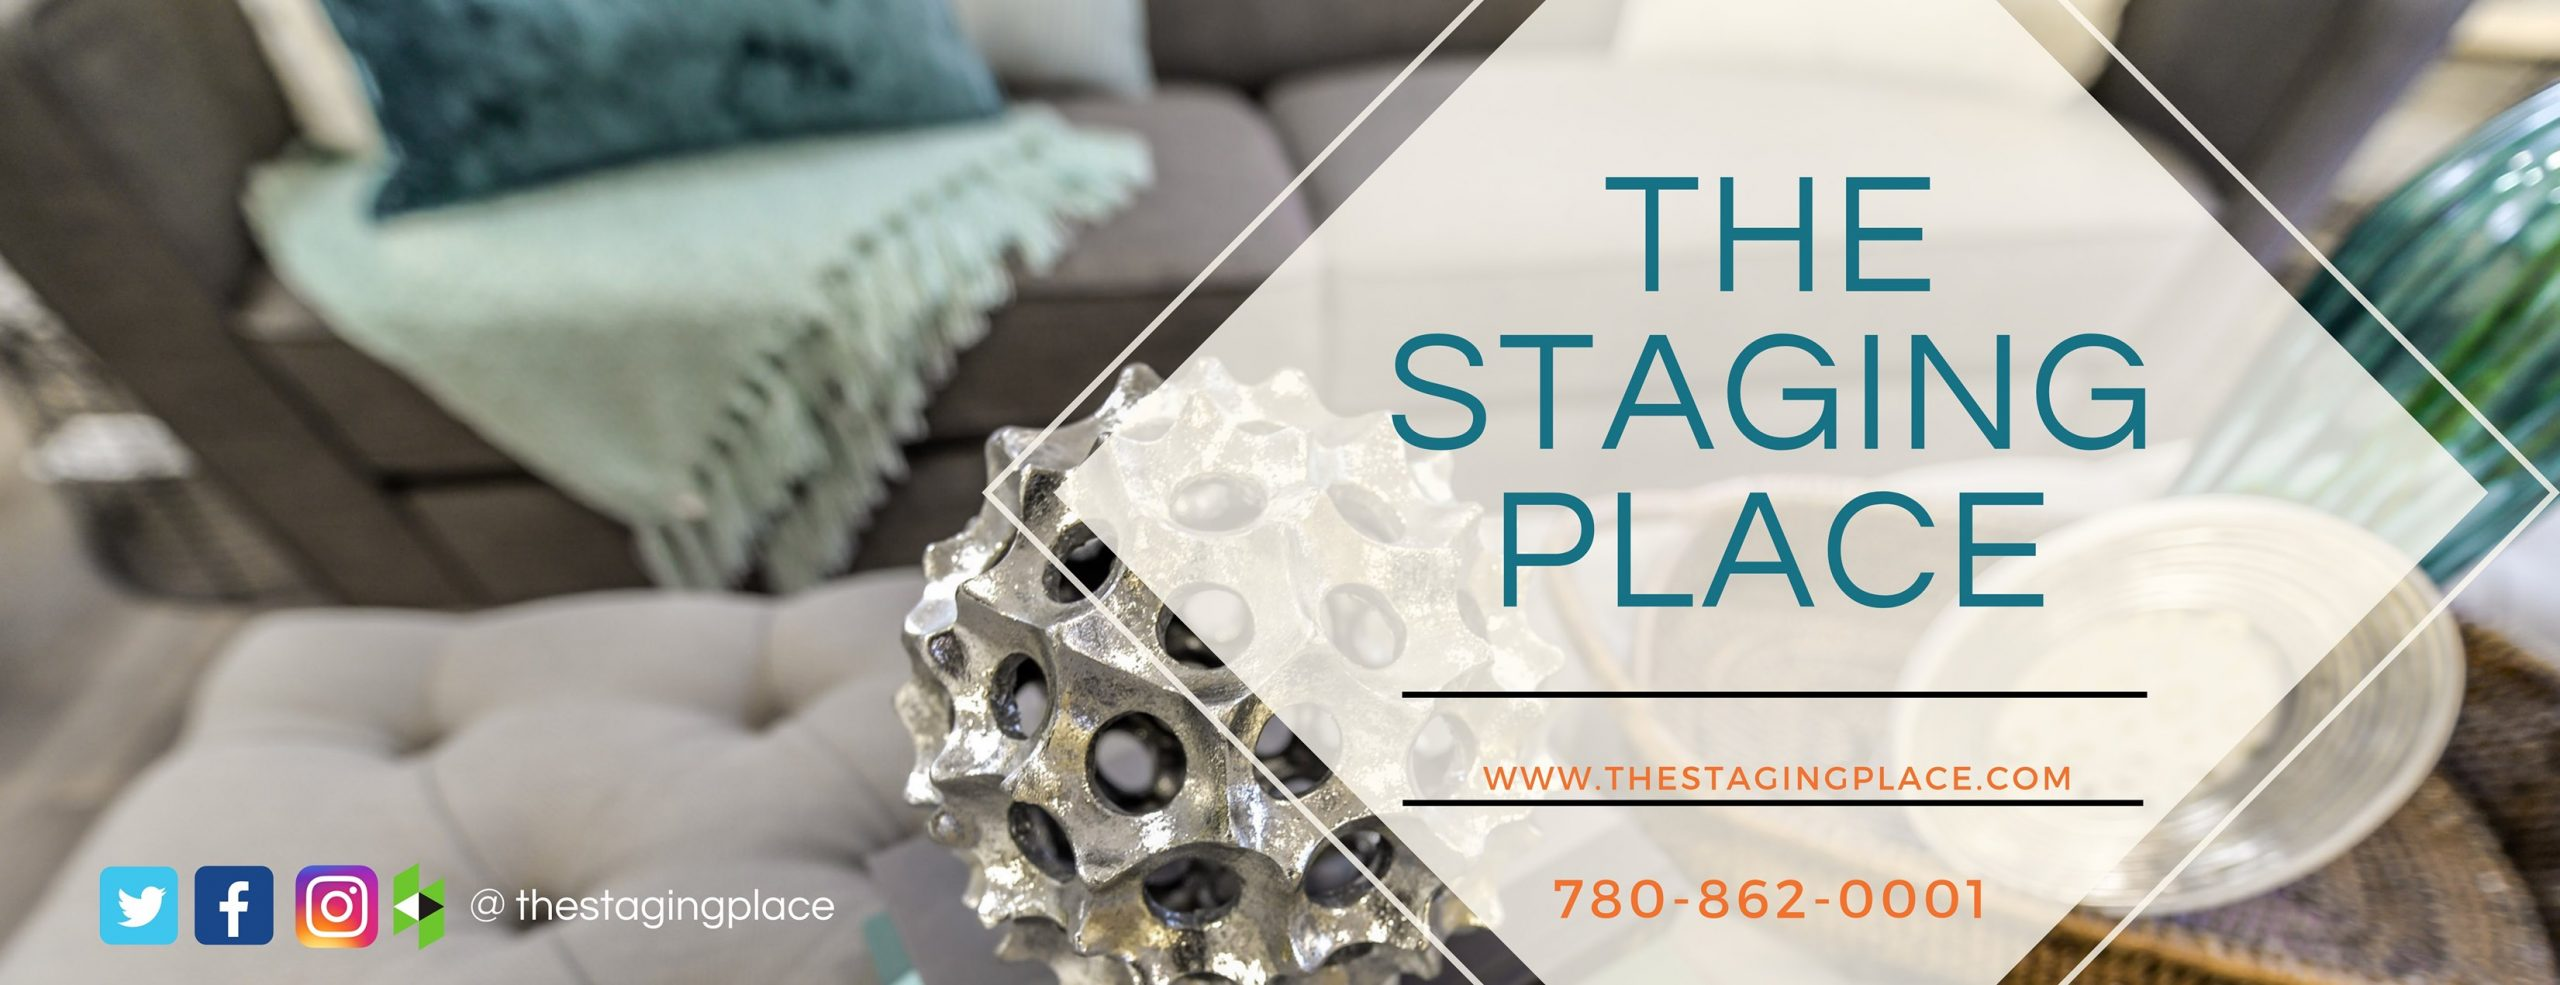 The Staging Place